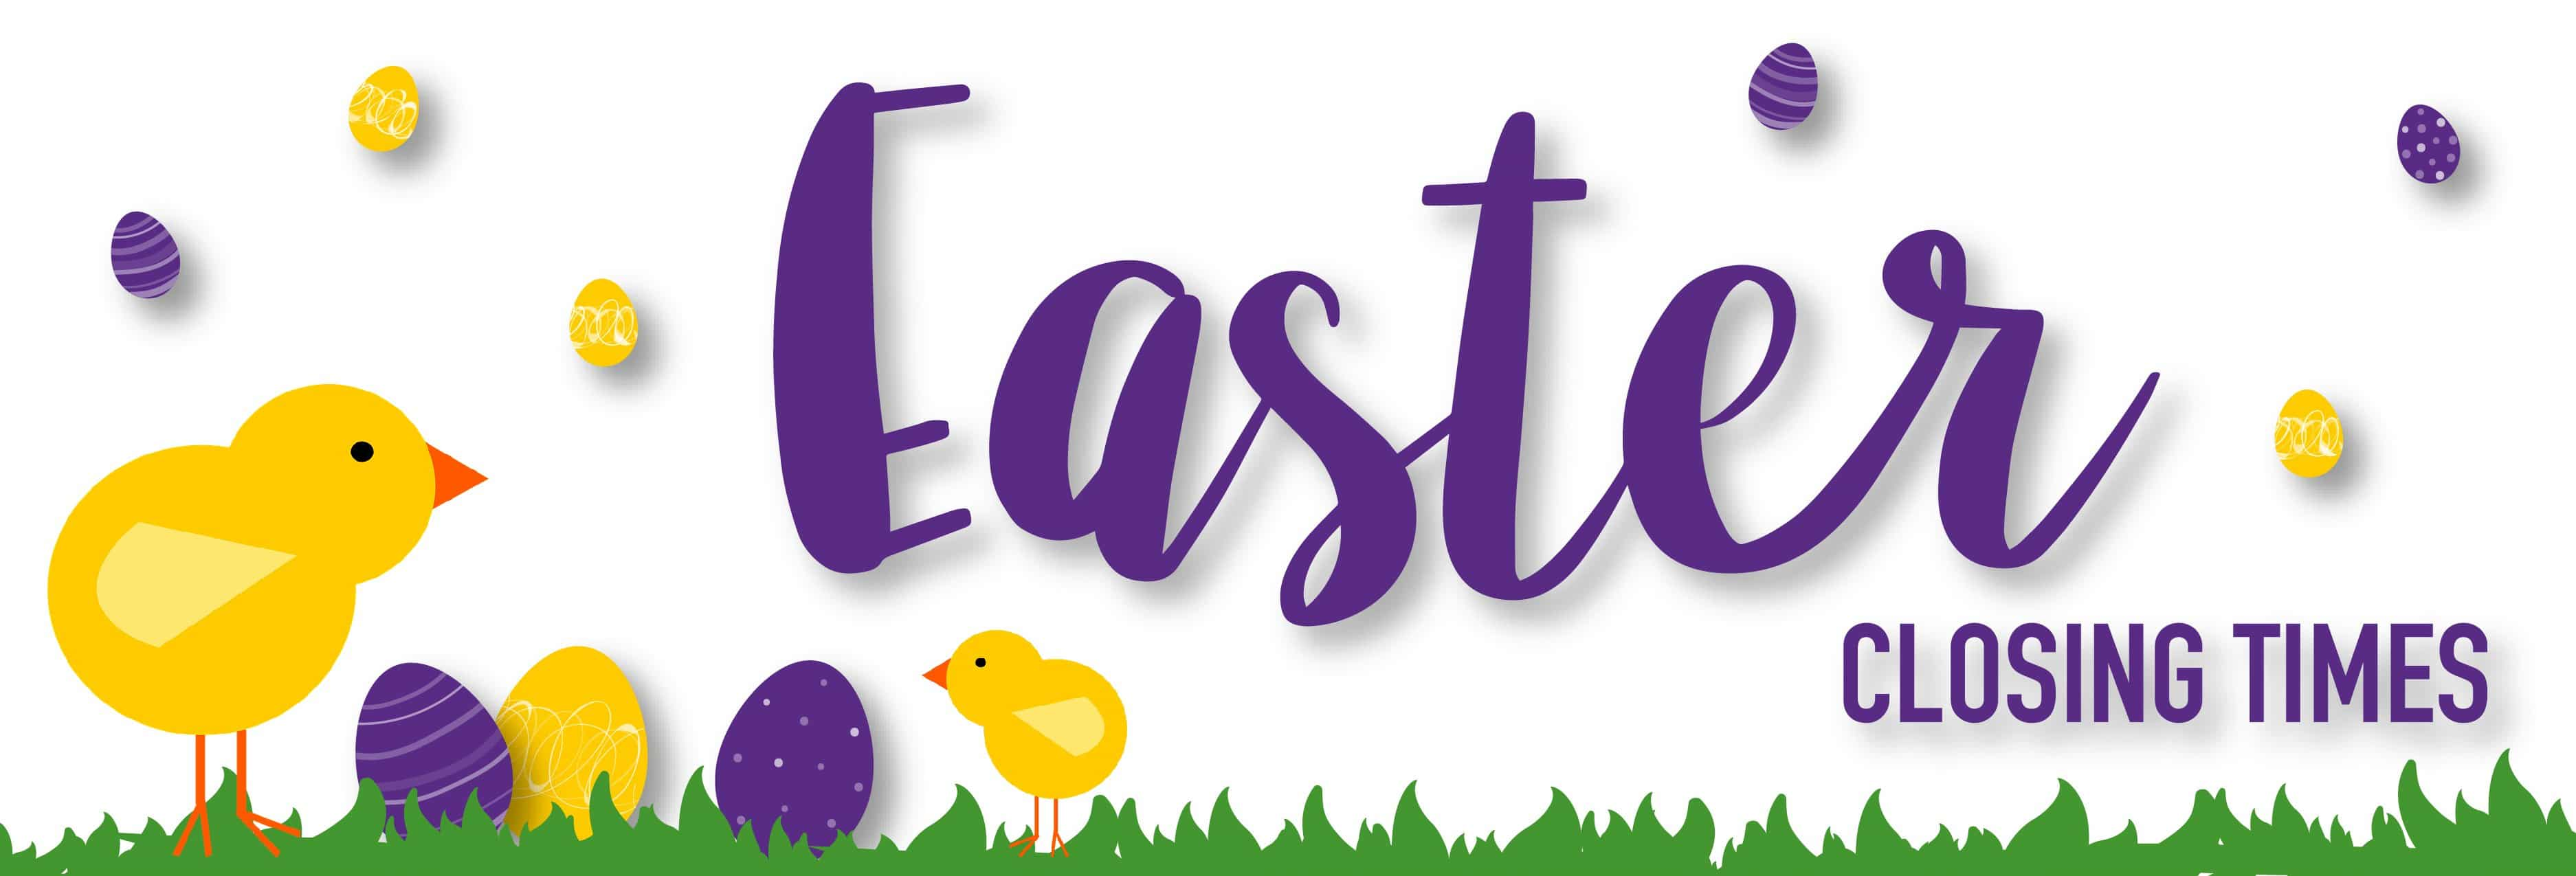 Safetynet Solutions Easter Closing Times